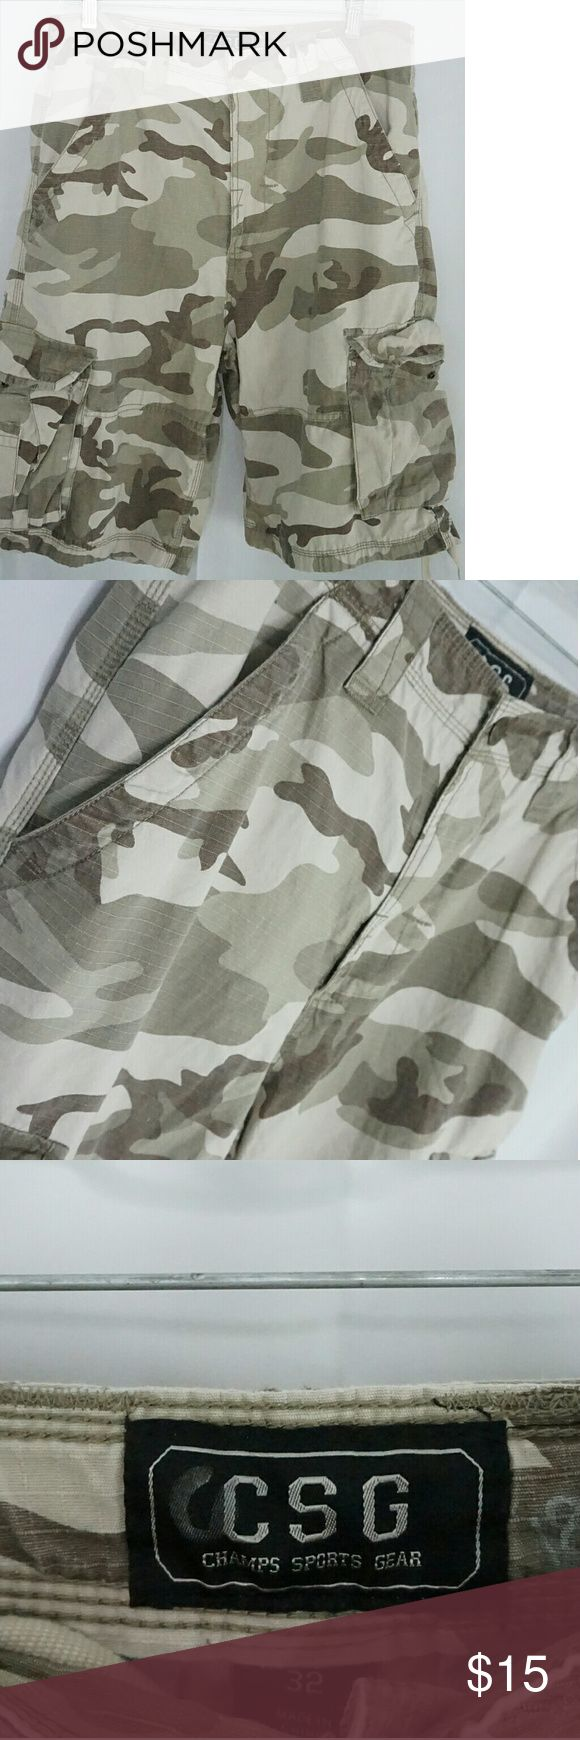 CSG Champs Sports Gear Camouflage Cargo Shorts Item is in good used condition except for a tear in the fabric on the lower front right pocket. Champs Shorts Cargo